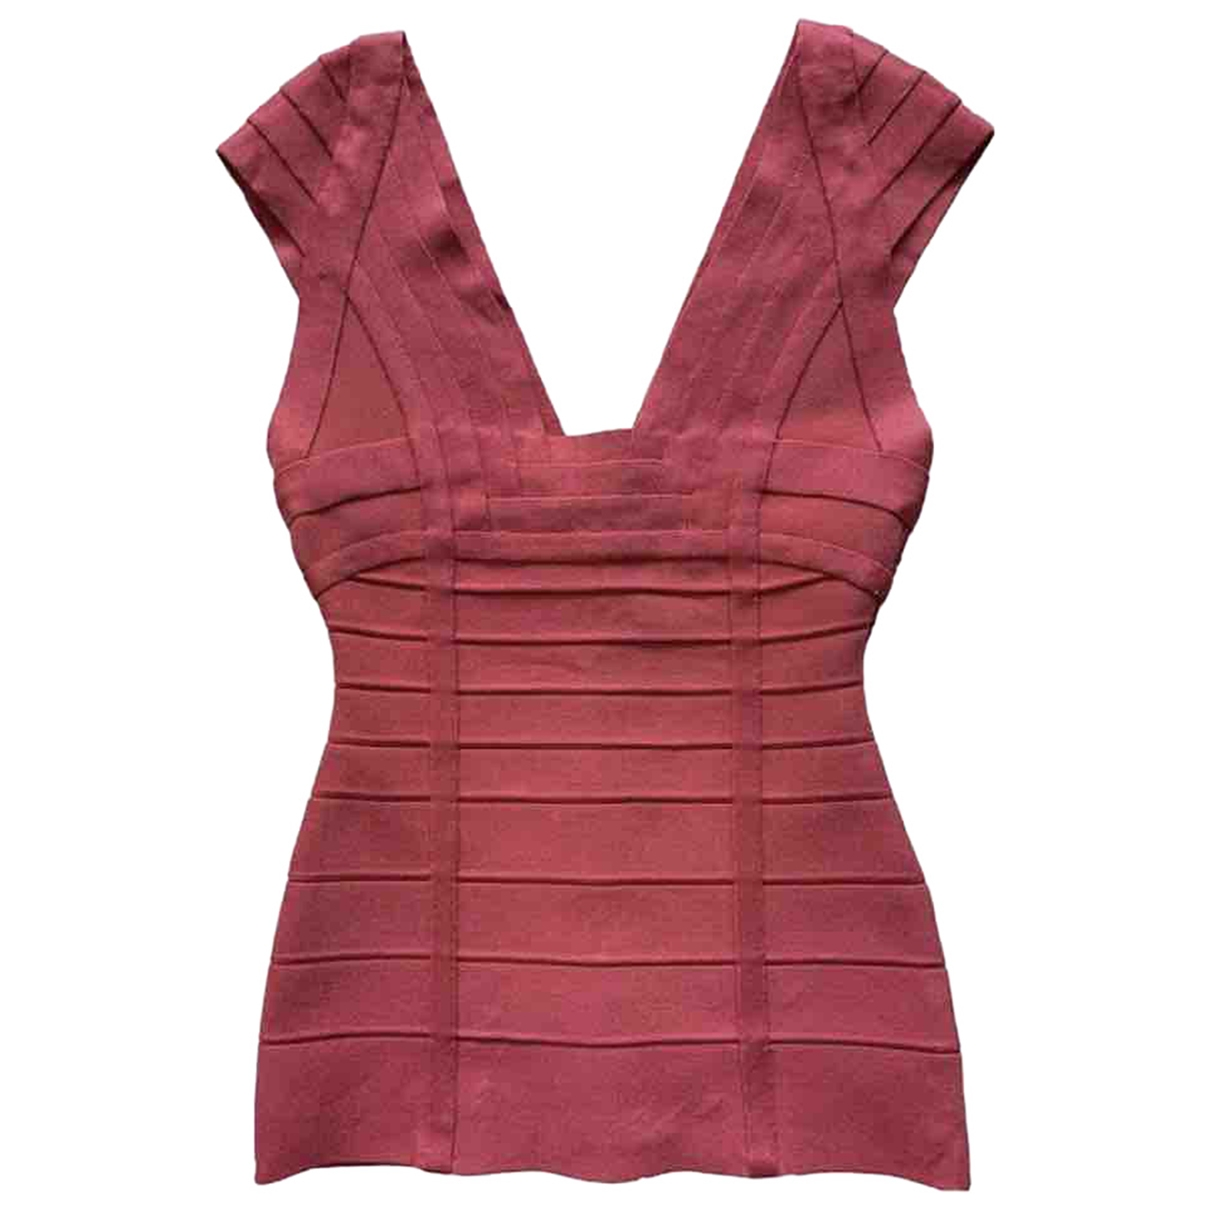 Herve Leger \N Pink  top for Women XS International